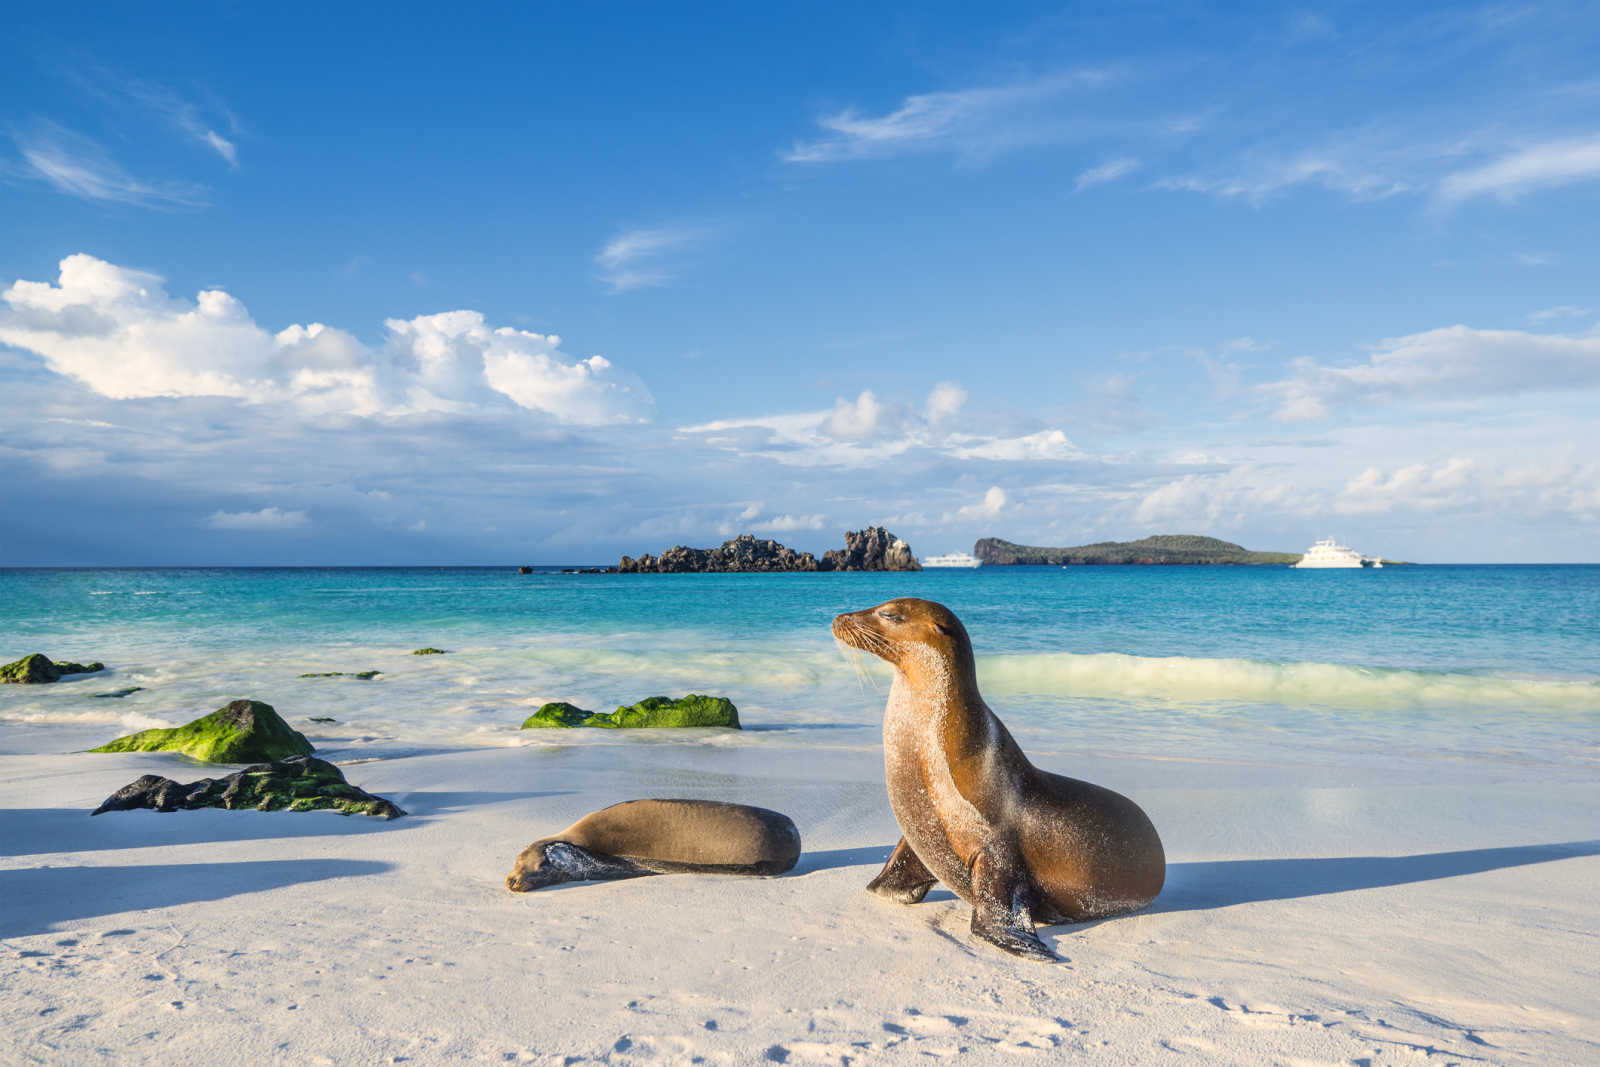 See beautiful seals on white beaches, pictured here, on a Galapagos Islands vacation